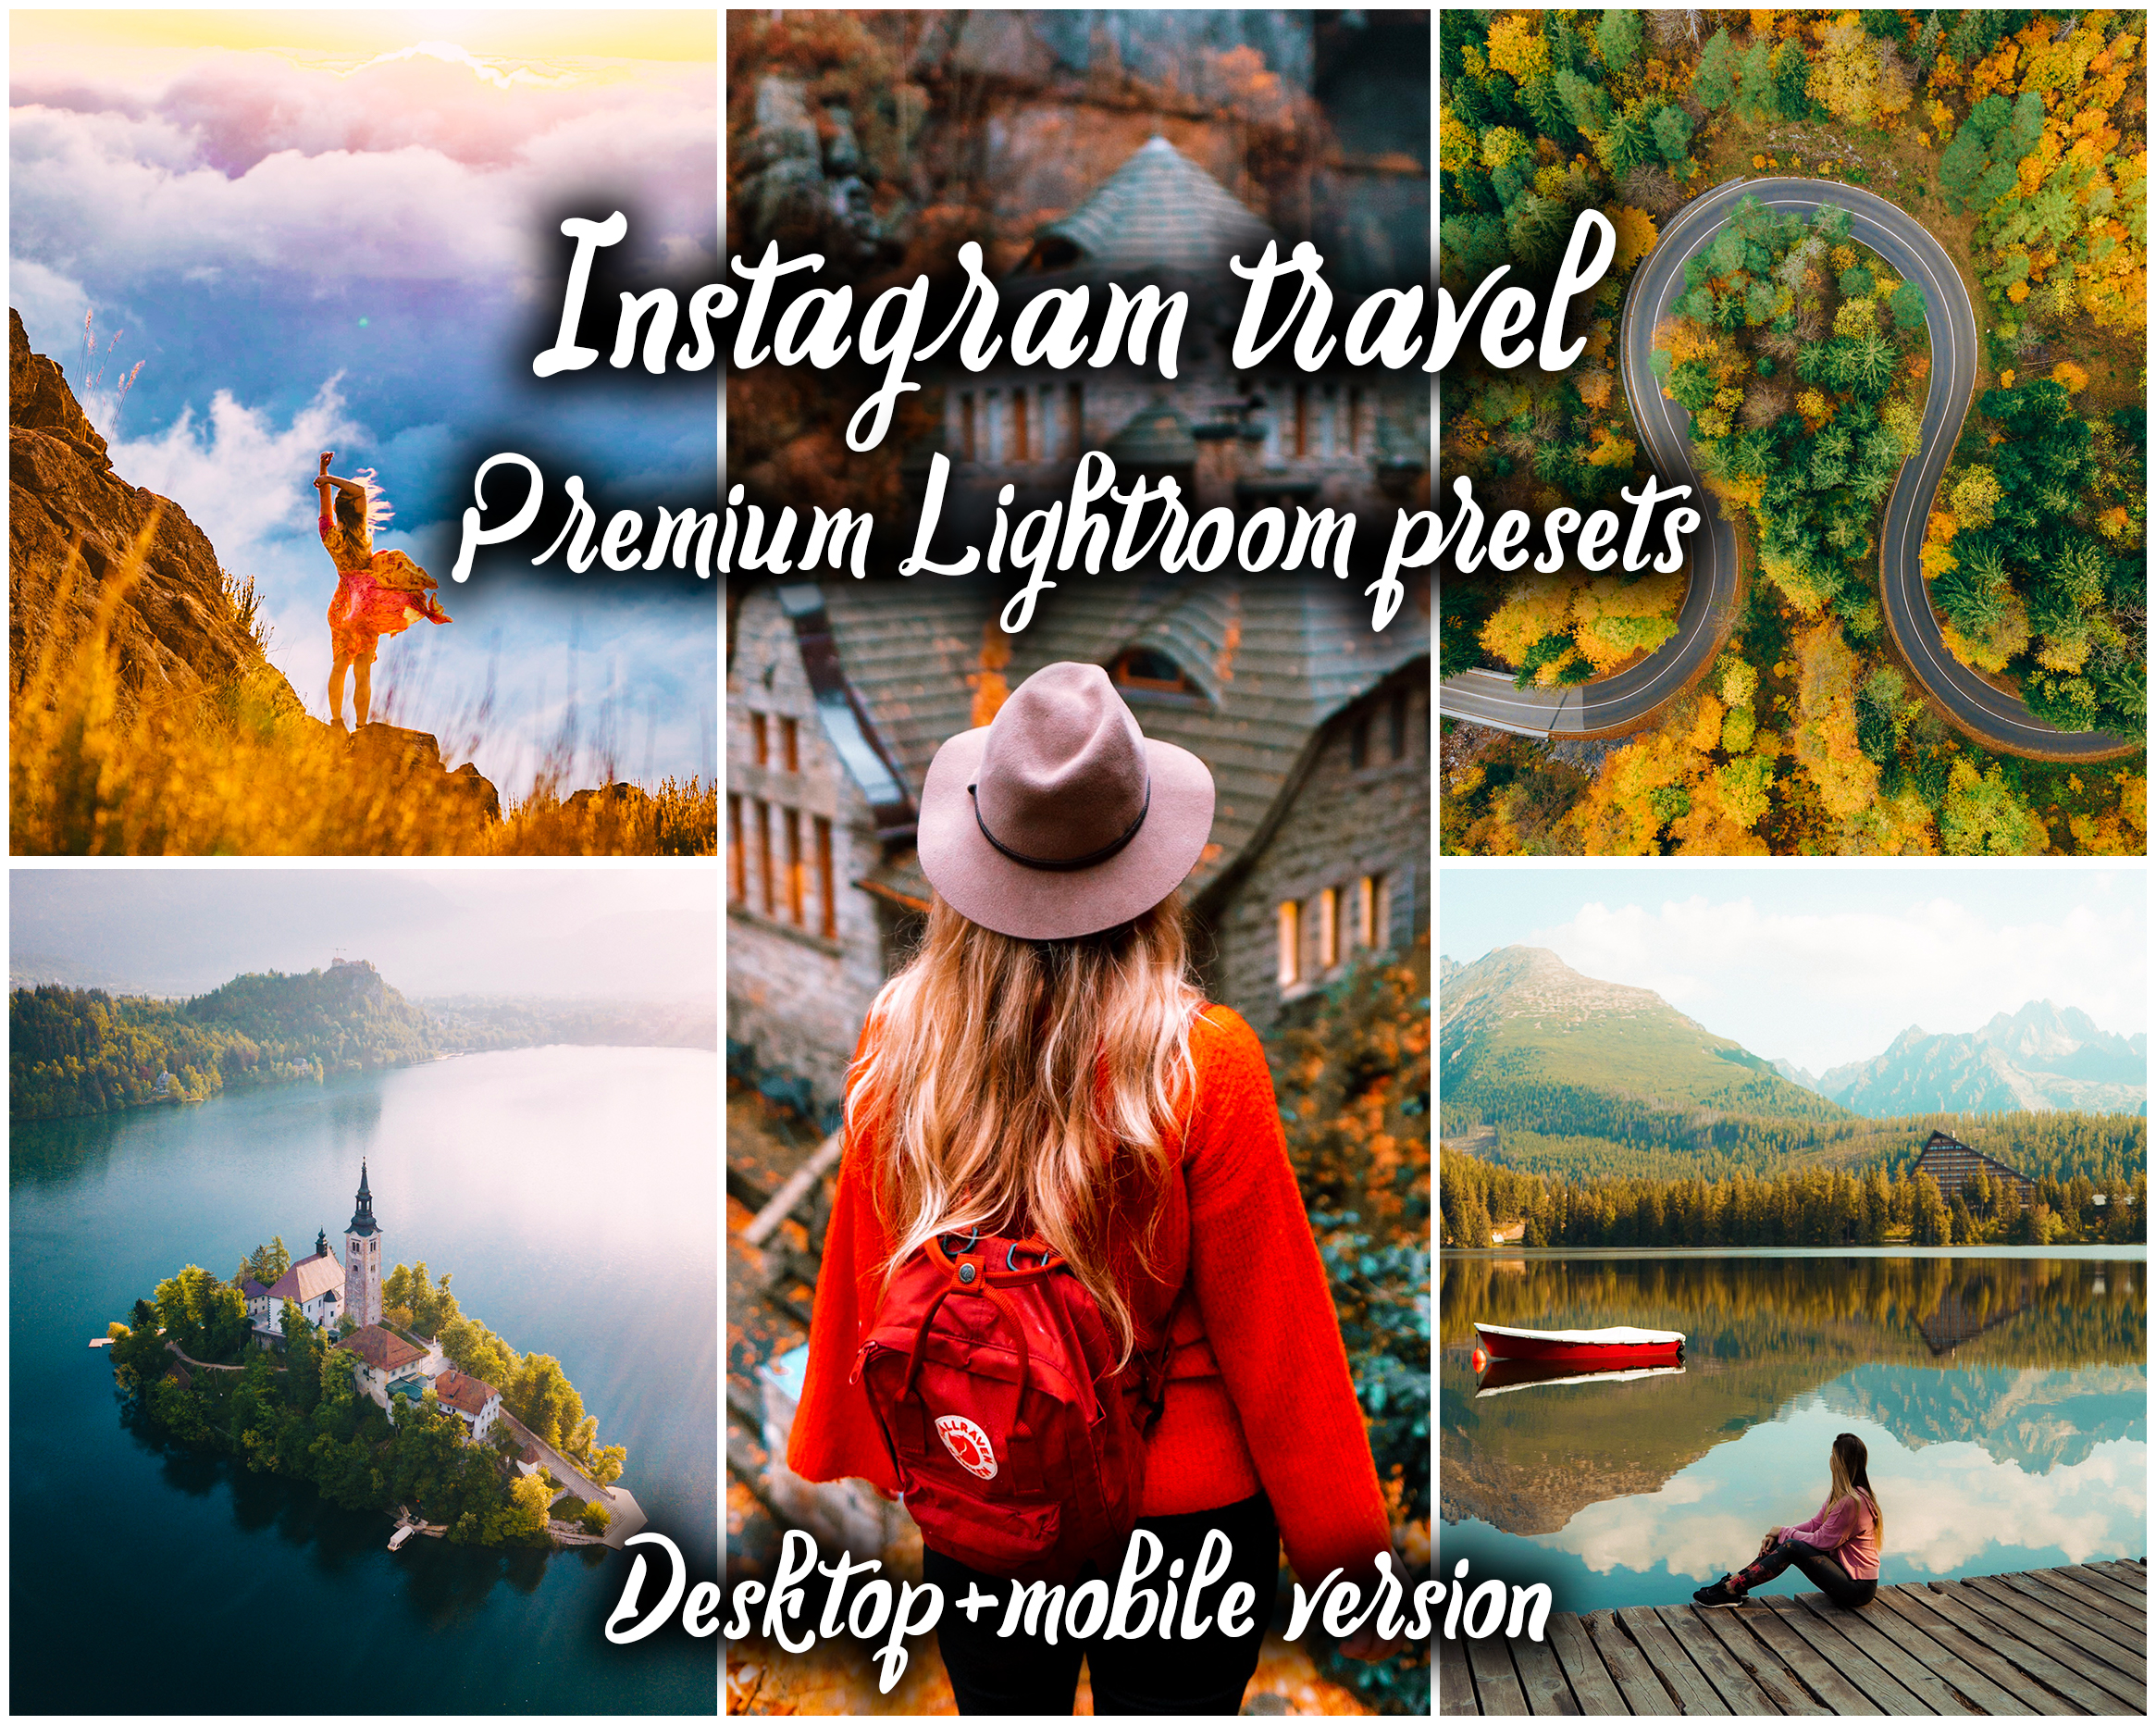 18 Mobile & Desktop Adobe Lightroom presets - Instagram travel premium pack - YOU NEED ADOBE CC SUBSCRIPTION PLAN OR ADOBE LIGHTROOM CLASSIC V7 AND ABOVE TO USE THE PRESETS. They are in the format of XMP file and they are suitable specifically for use in Lightroom CC Mobile & Desktop app with a subscription or/and Lightroom Classic V6 and above. Works on iOS and Android.